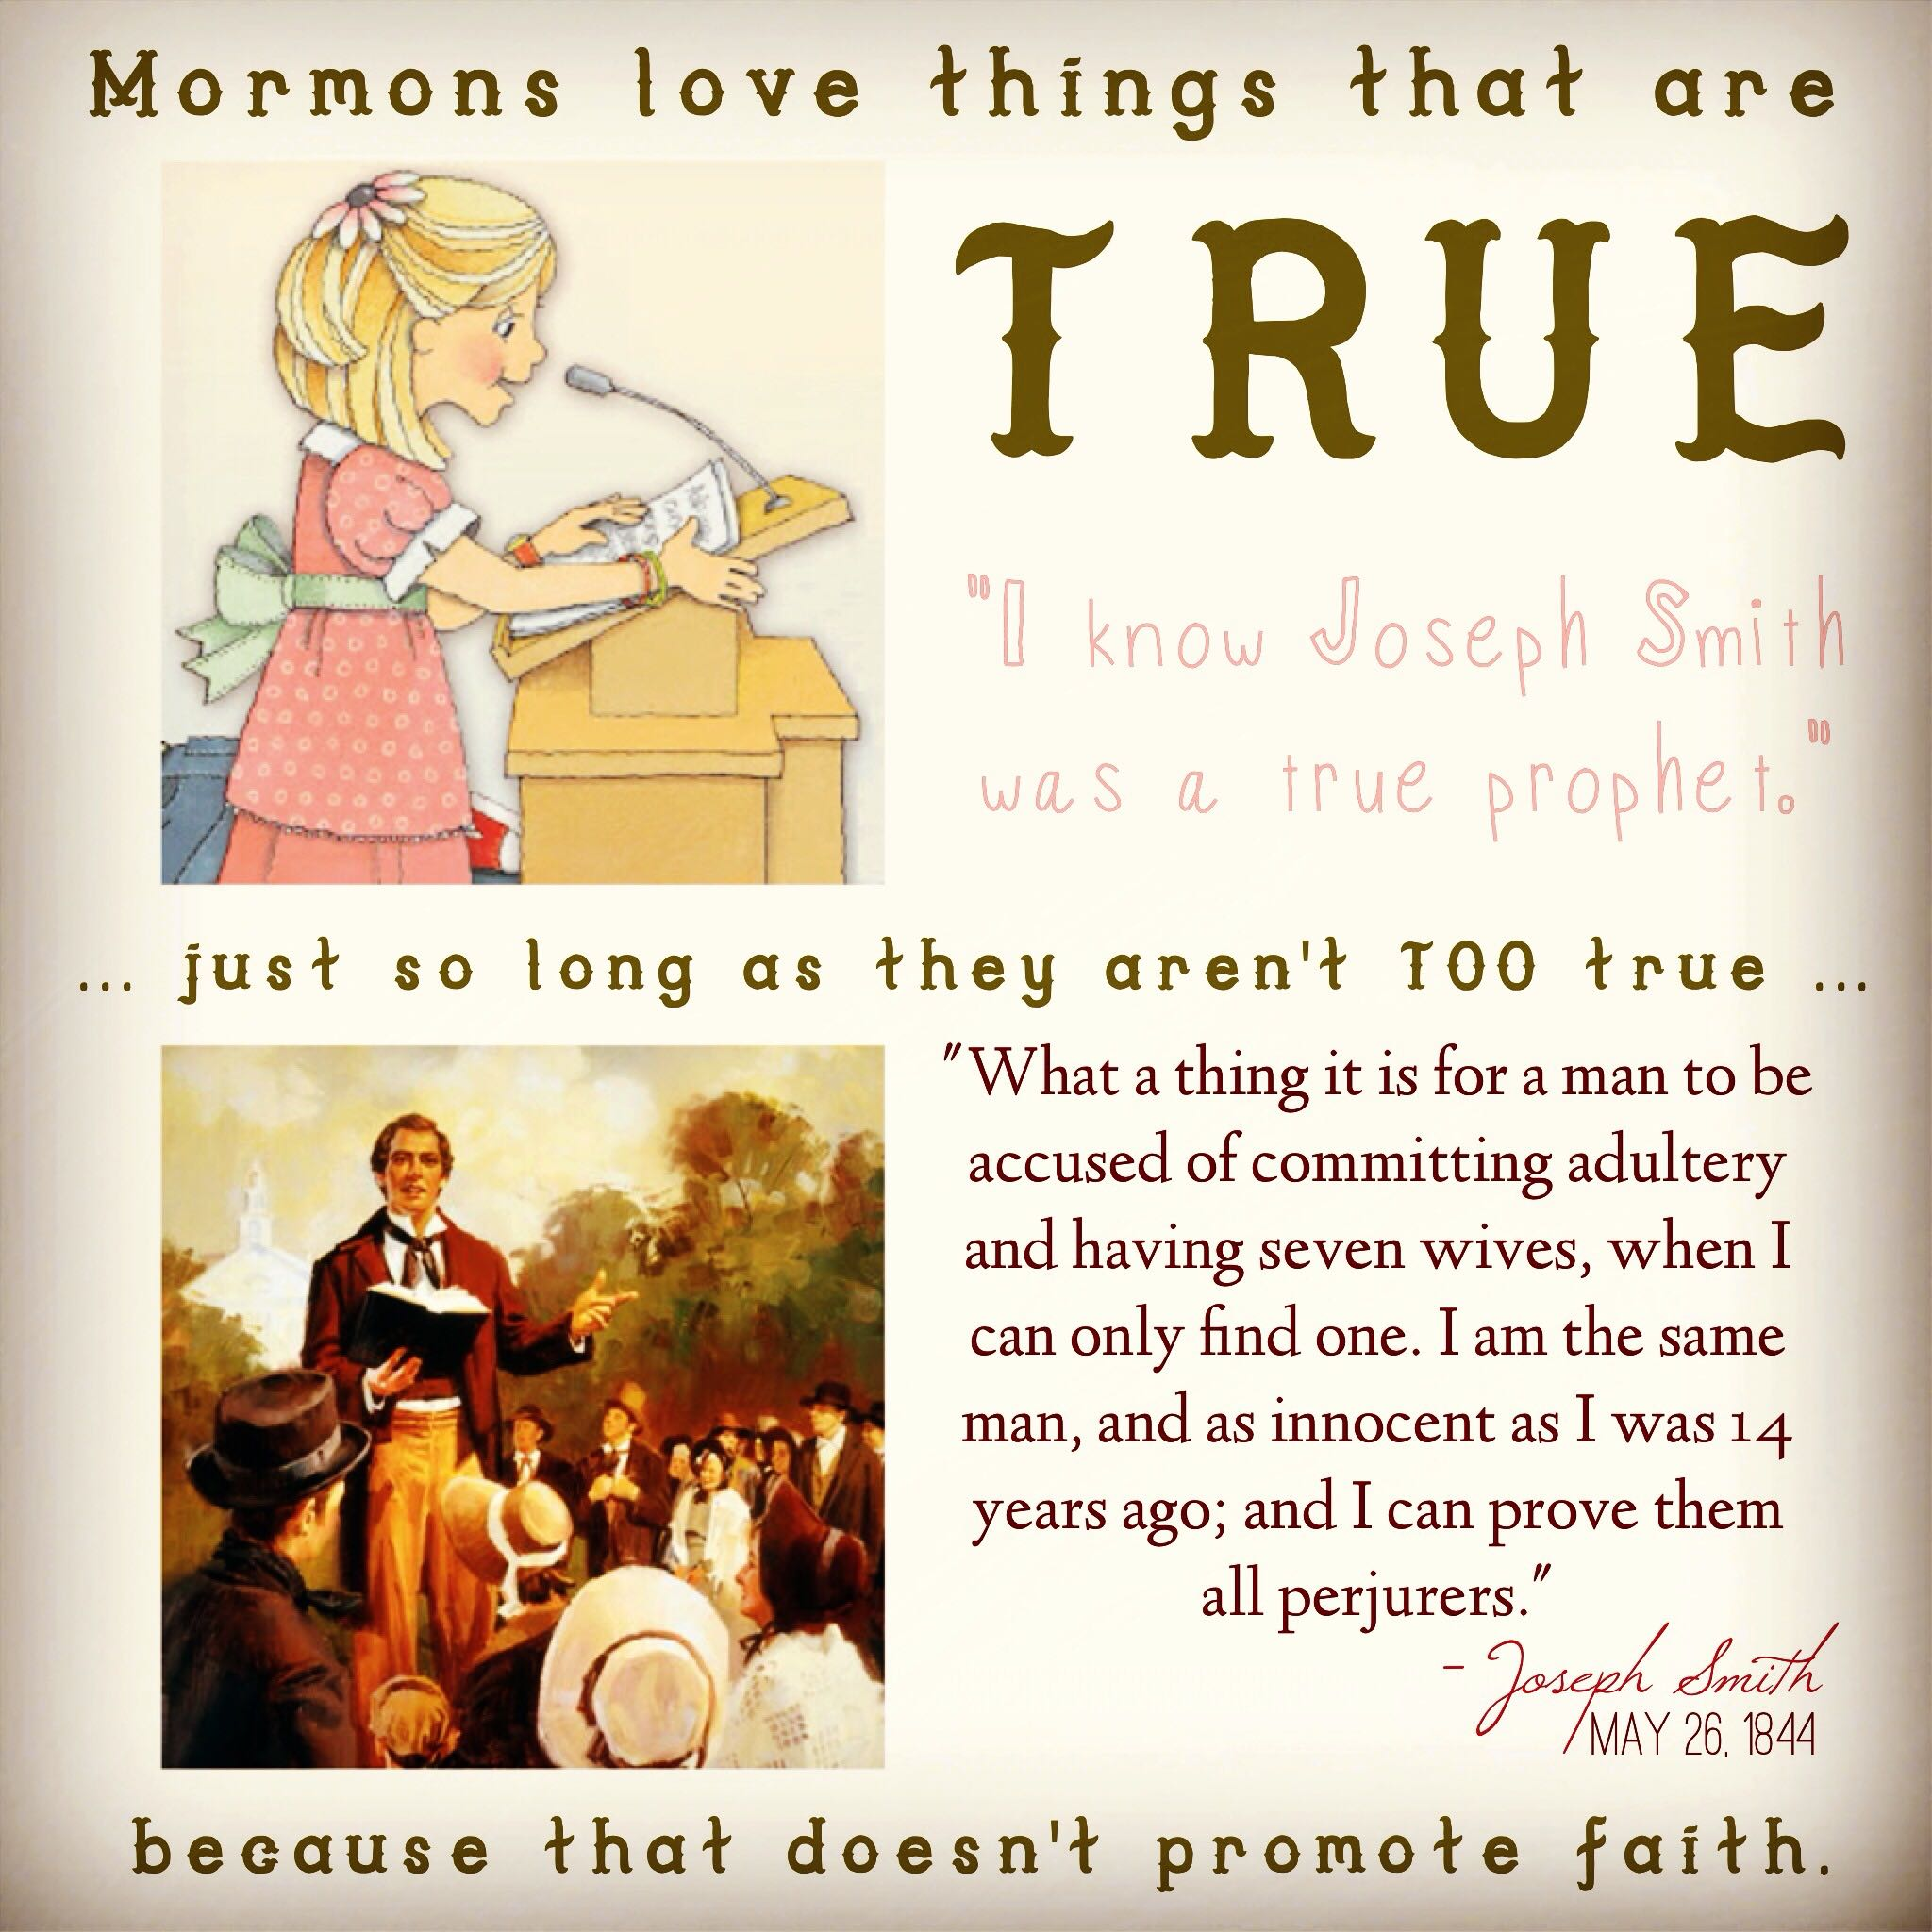 Promote faith over truth